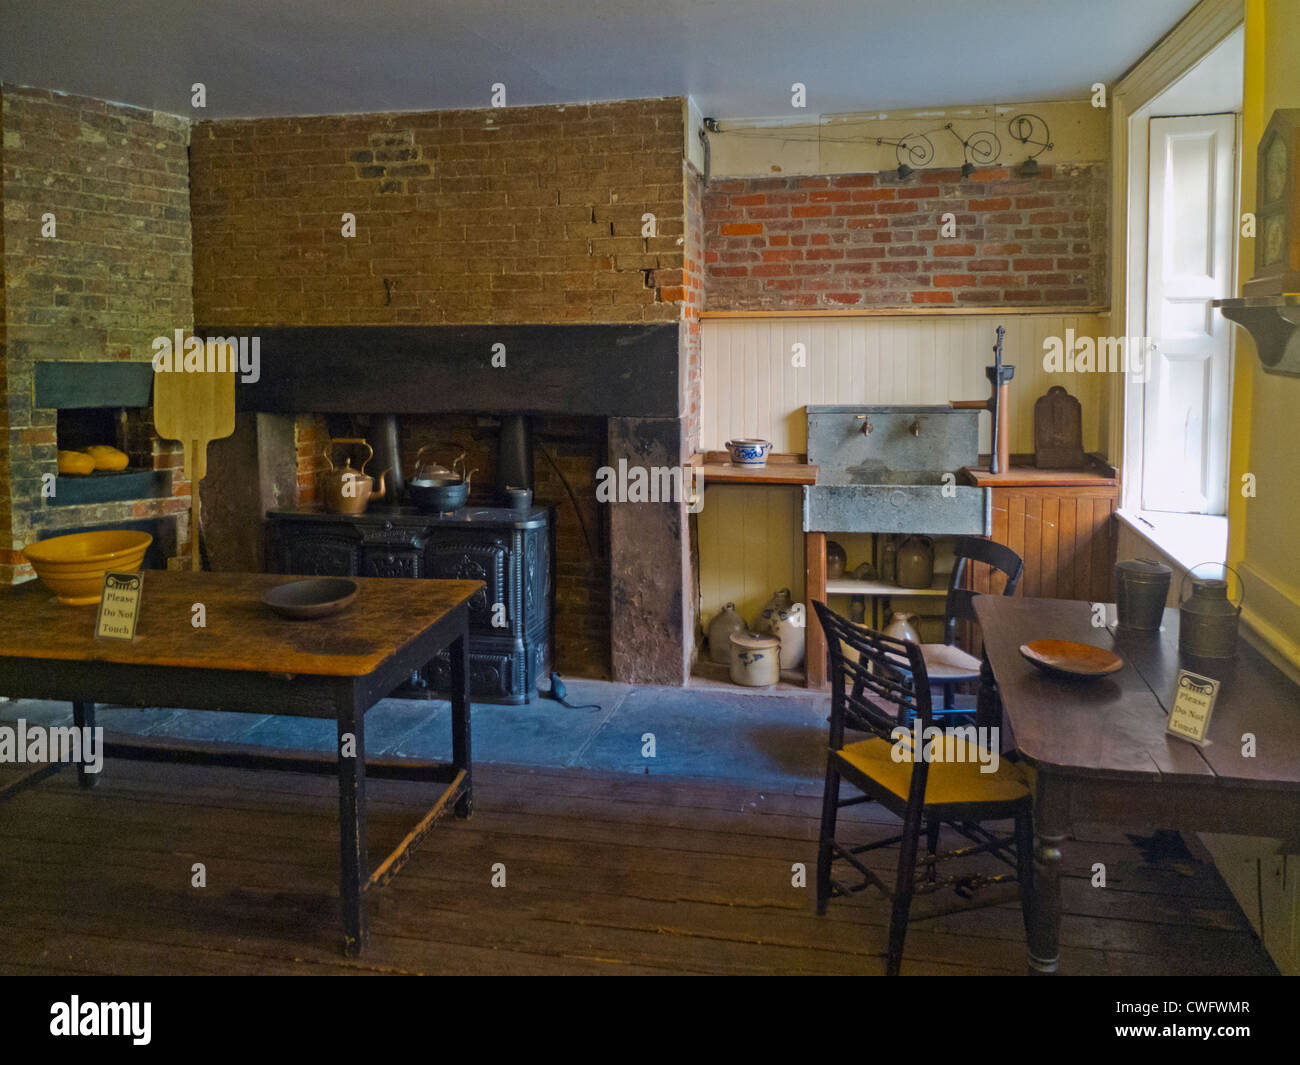 Merchant's house museum in New York City - Stock Image